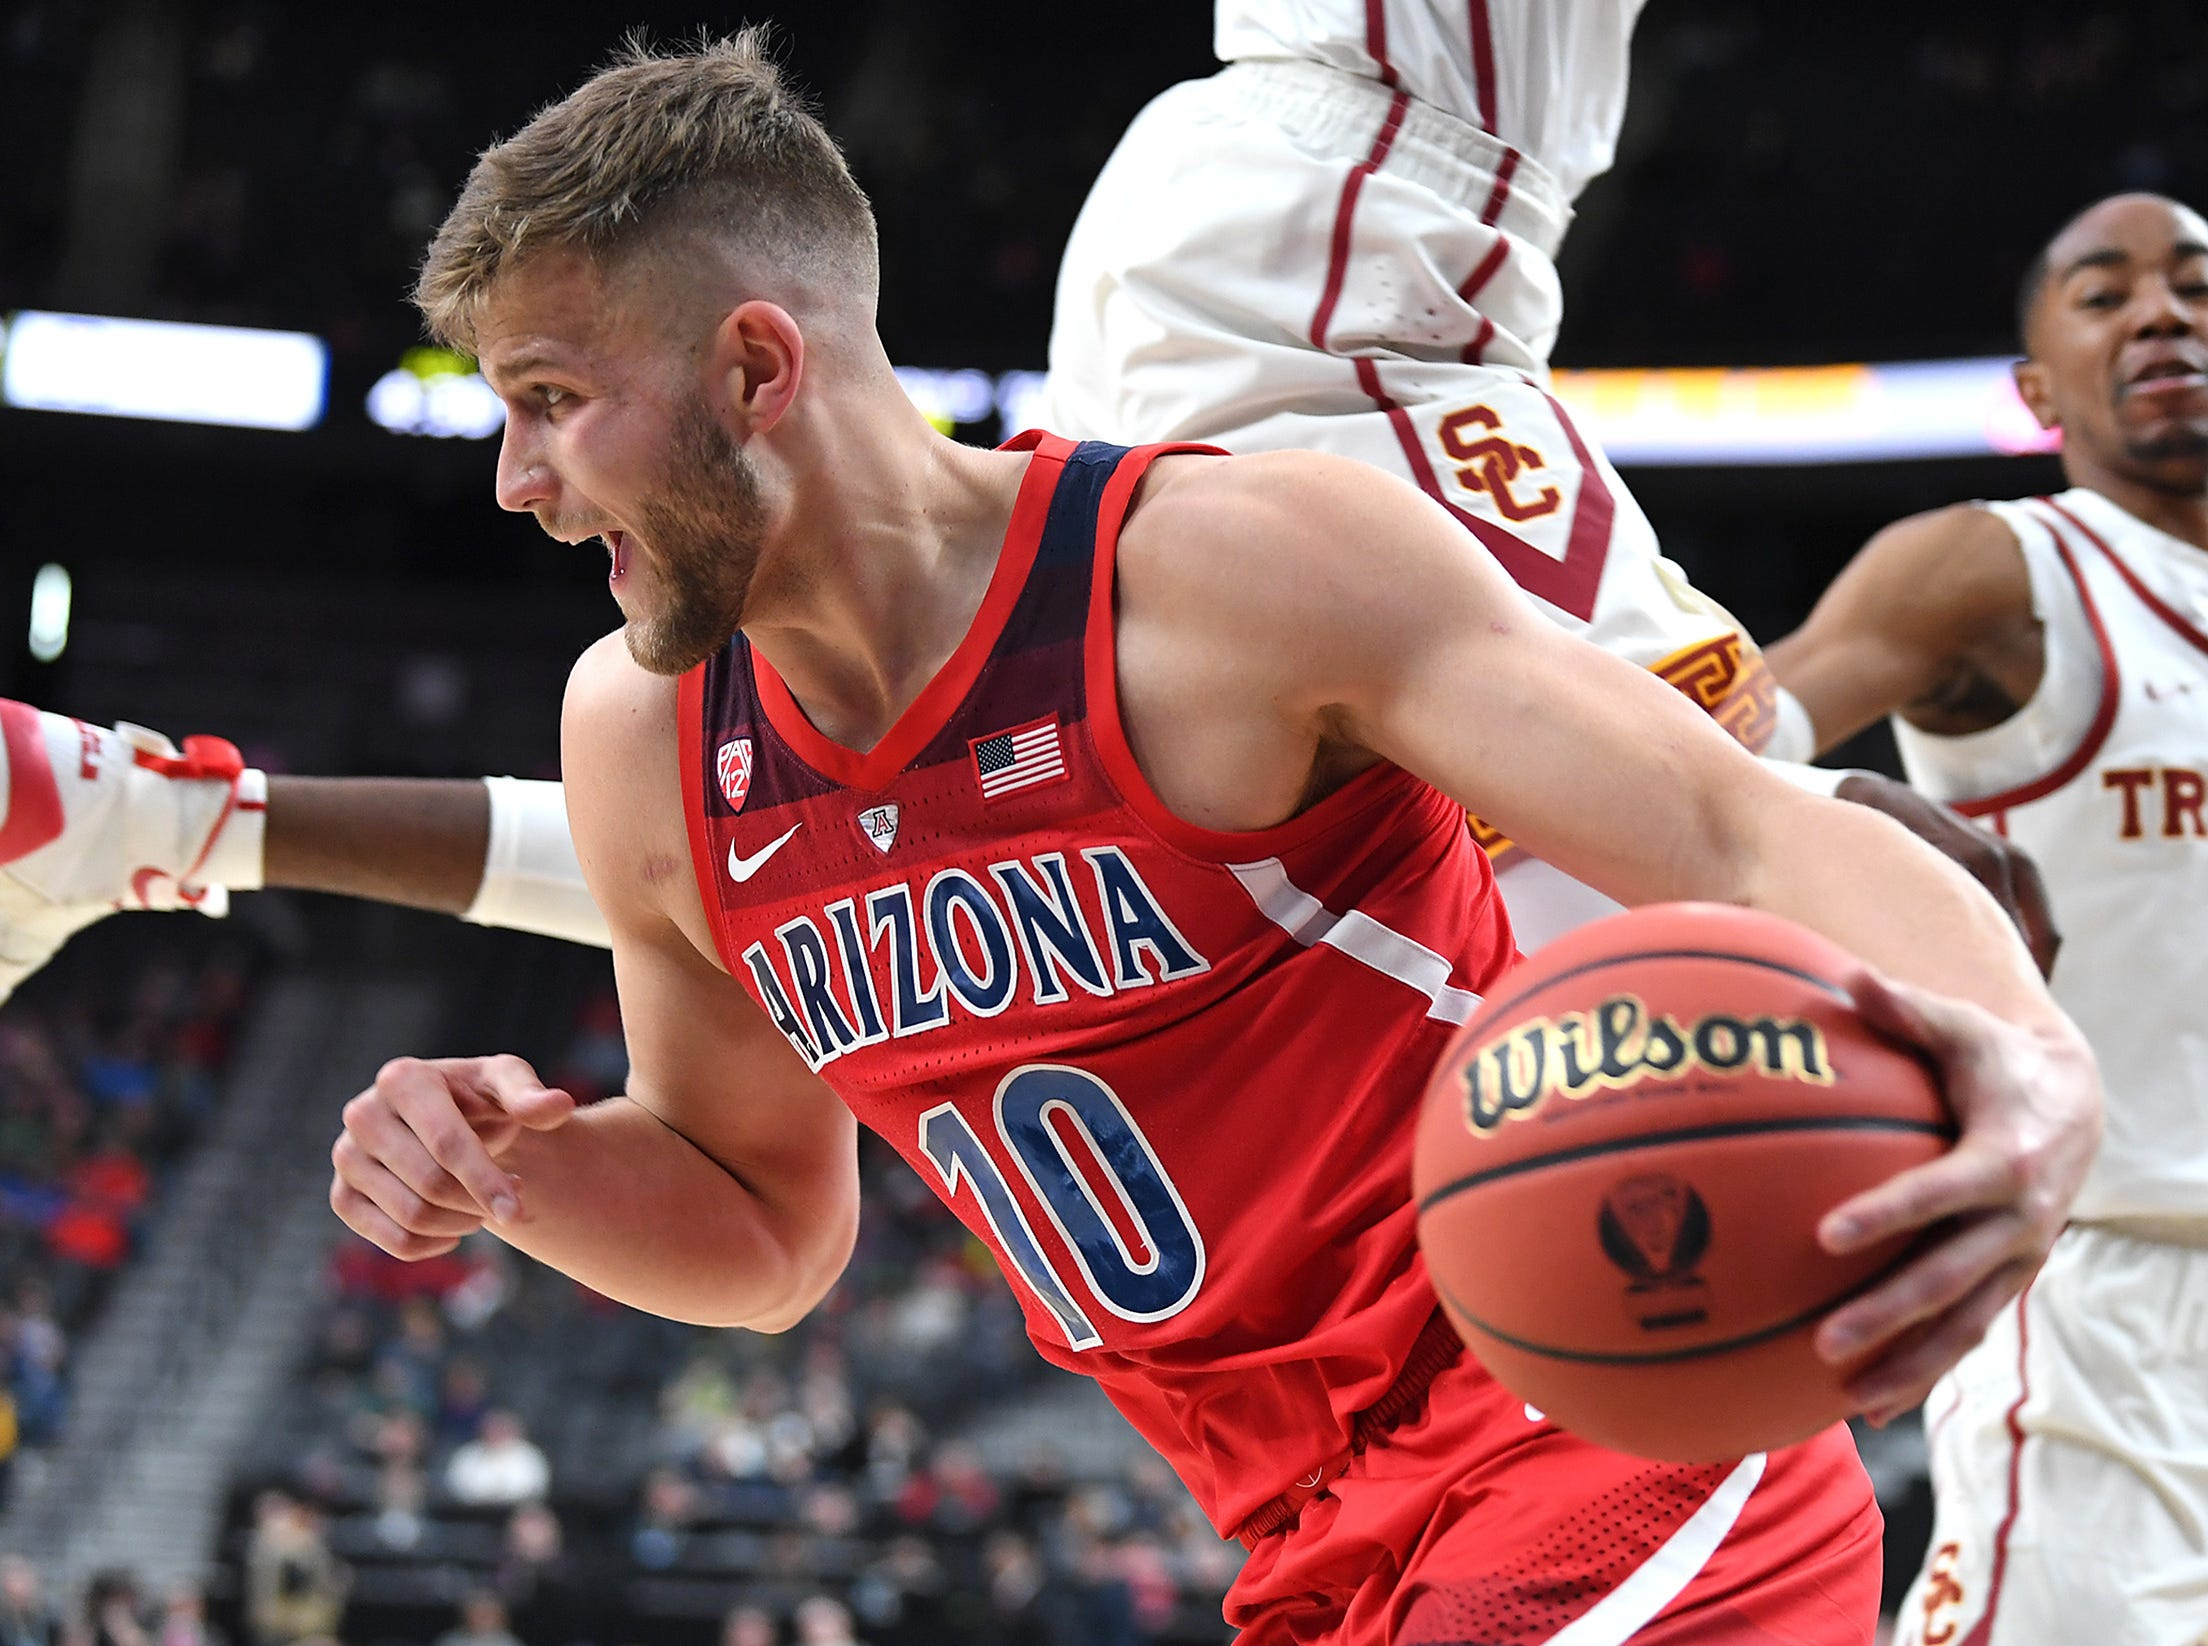 Mar 13, 2019; Las Vegas, NV, United States; Arizona Wildcats forward Ryan Luther (10) dribbles during the first half against the USC Trojans in a Pac-12 conference tournament game at T-Mobile Arena. Mandatory Credit: Stephen R. Sylvanie-USA TODAY Sports